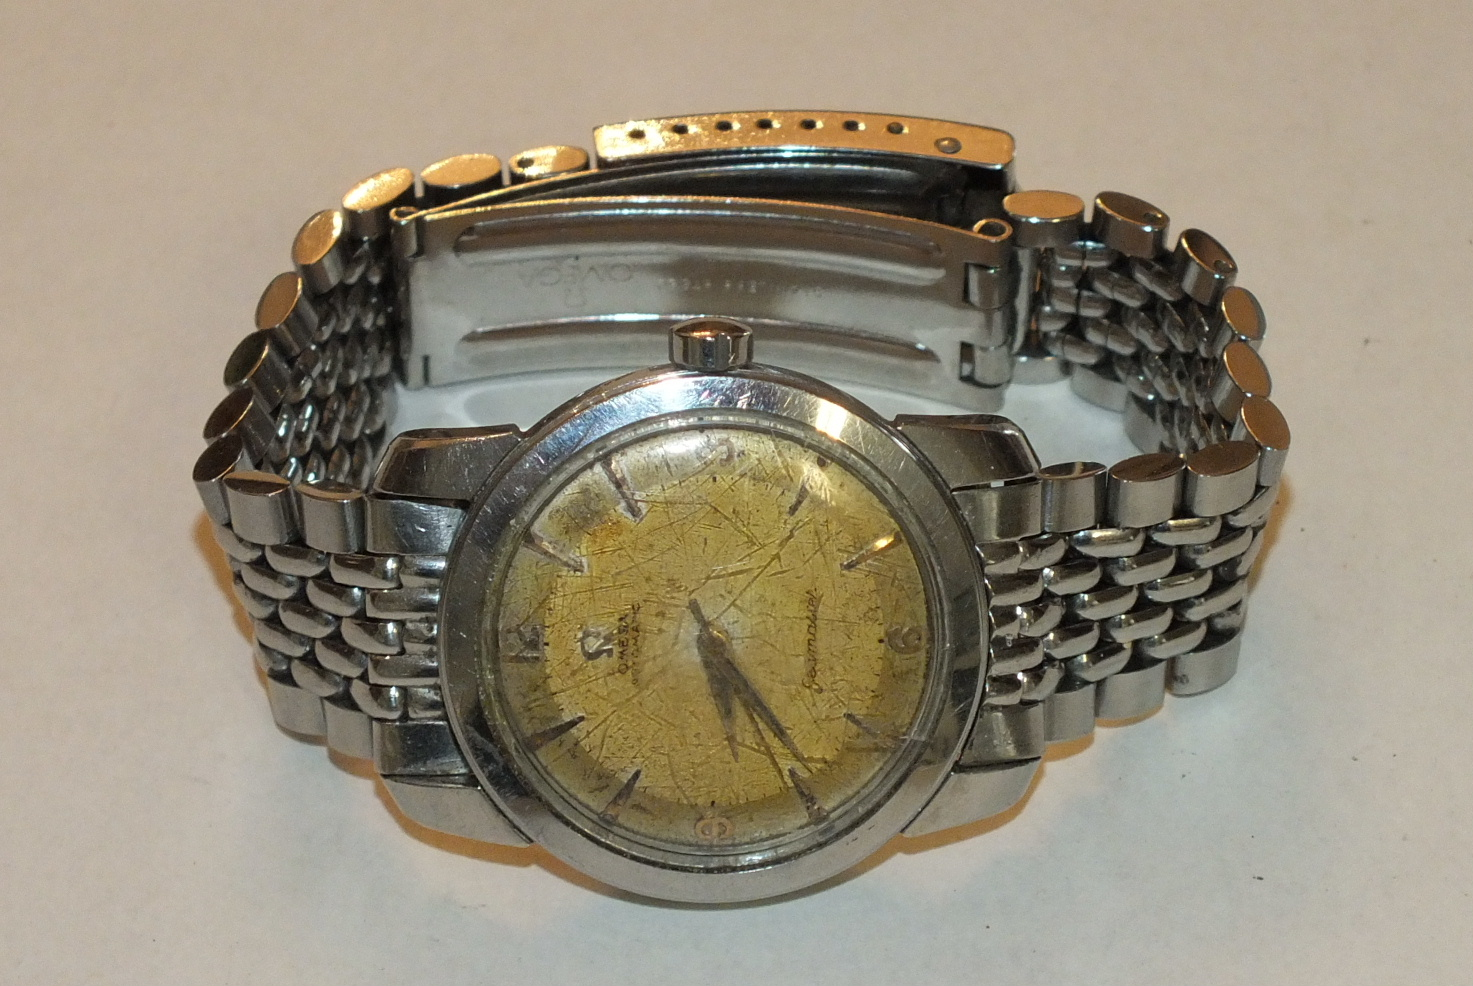 Lot 276 - Omega, Automatic Seamaster stainless steel gentleman's wrist watch, the champagne dial (a/f), with